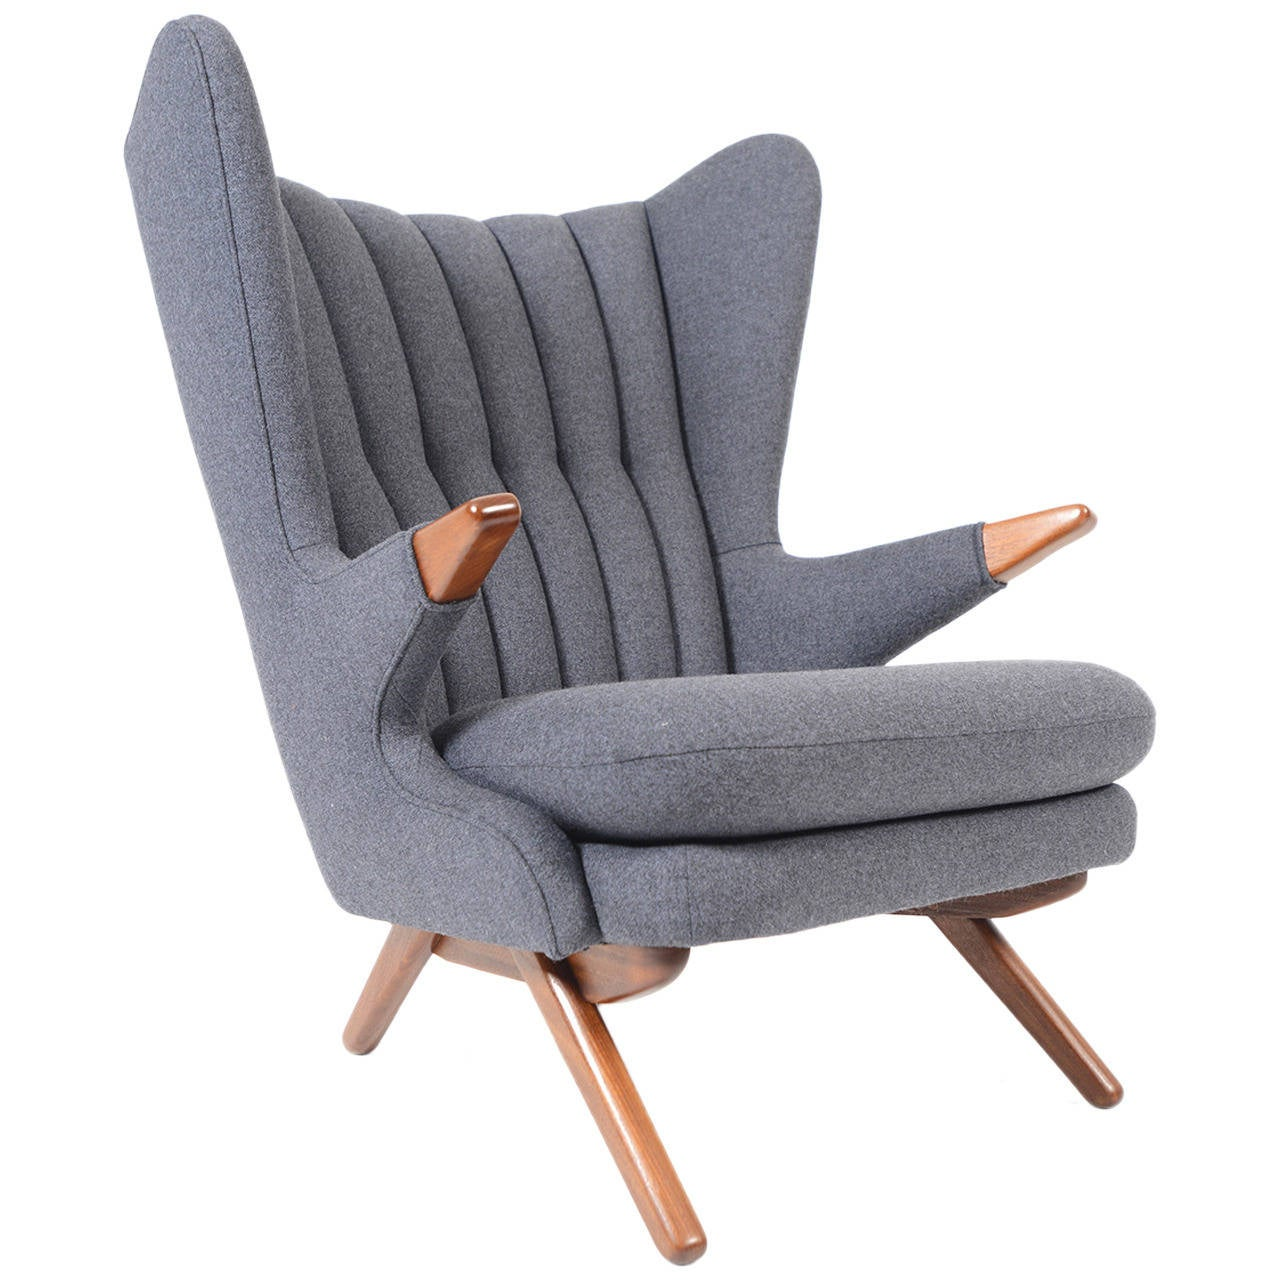 Svend Skipper Model 91 Lounge Chair In Taupe Wool 1